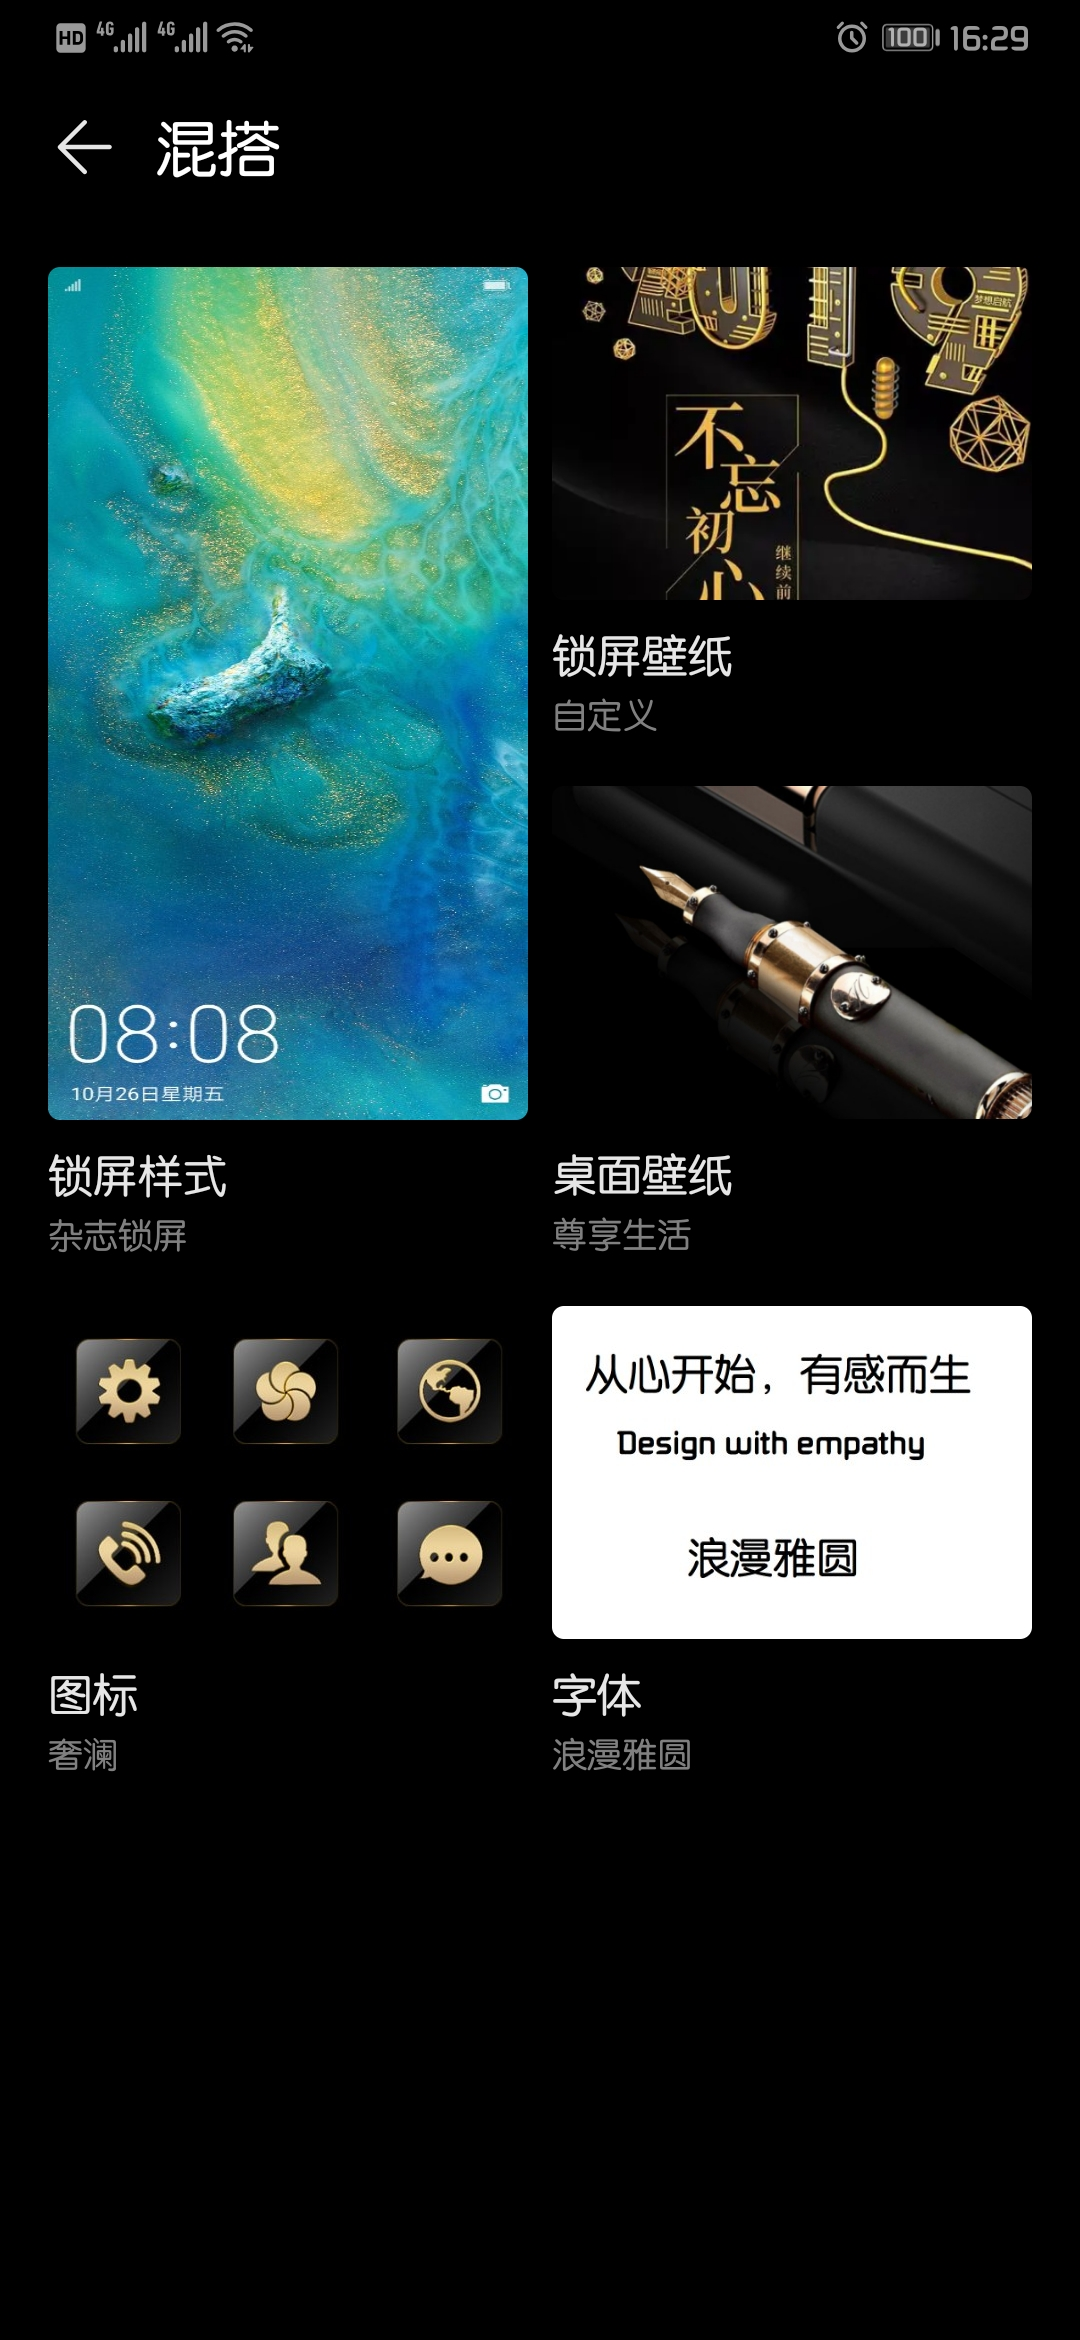 Screenshot_20190226_162927_com.huawei.android.thememanager.jpg